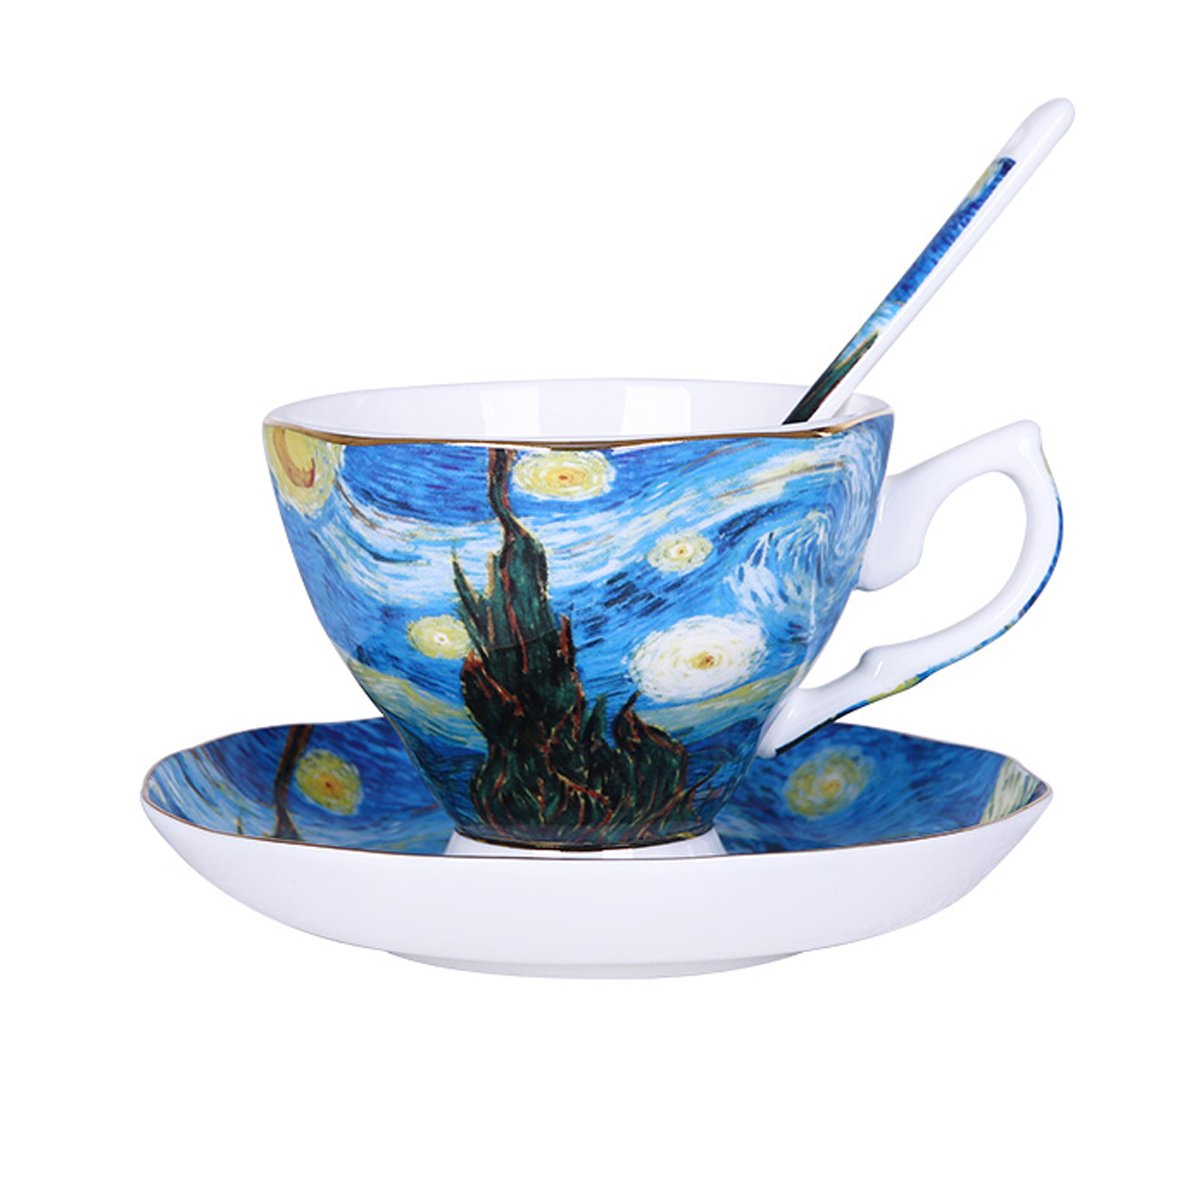 Vincent Van Gogh Bone China Tea Cup and Saucer Set With Gift Box, ''The Starry Night'' Art Coffee Mugs Set